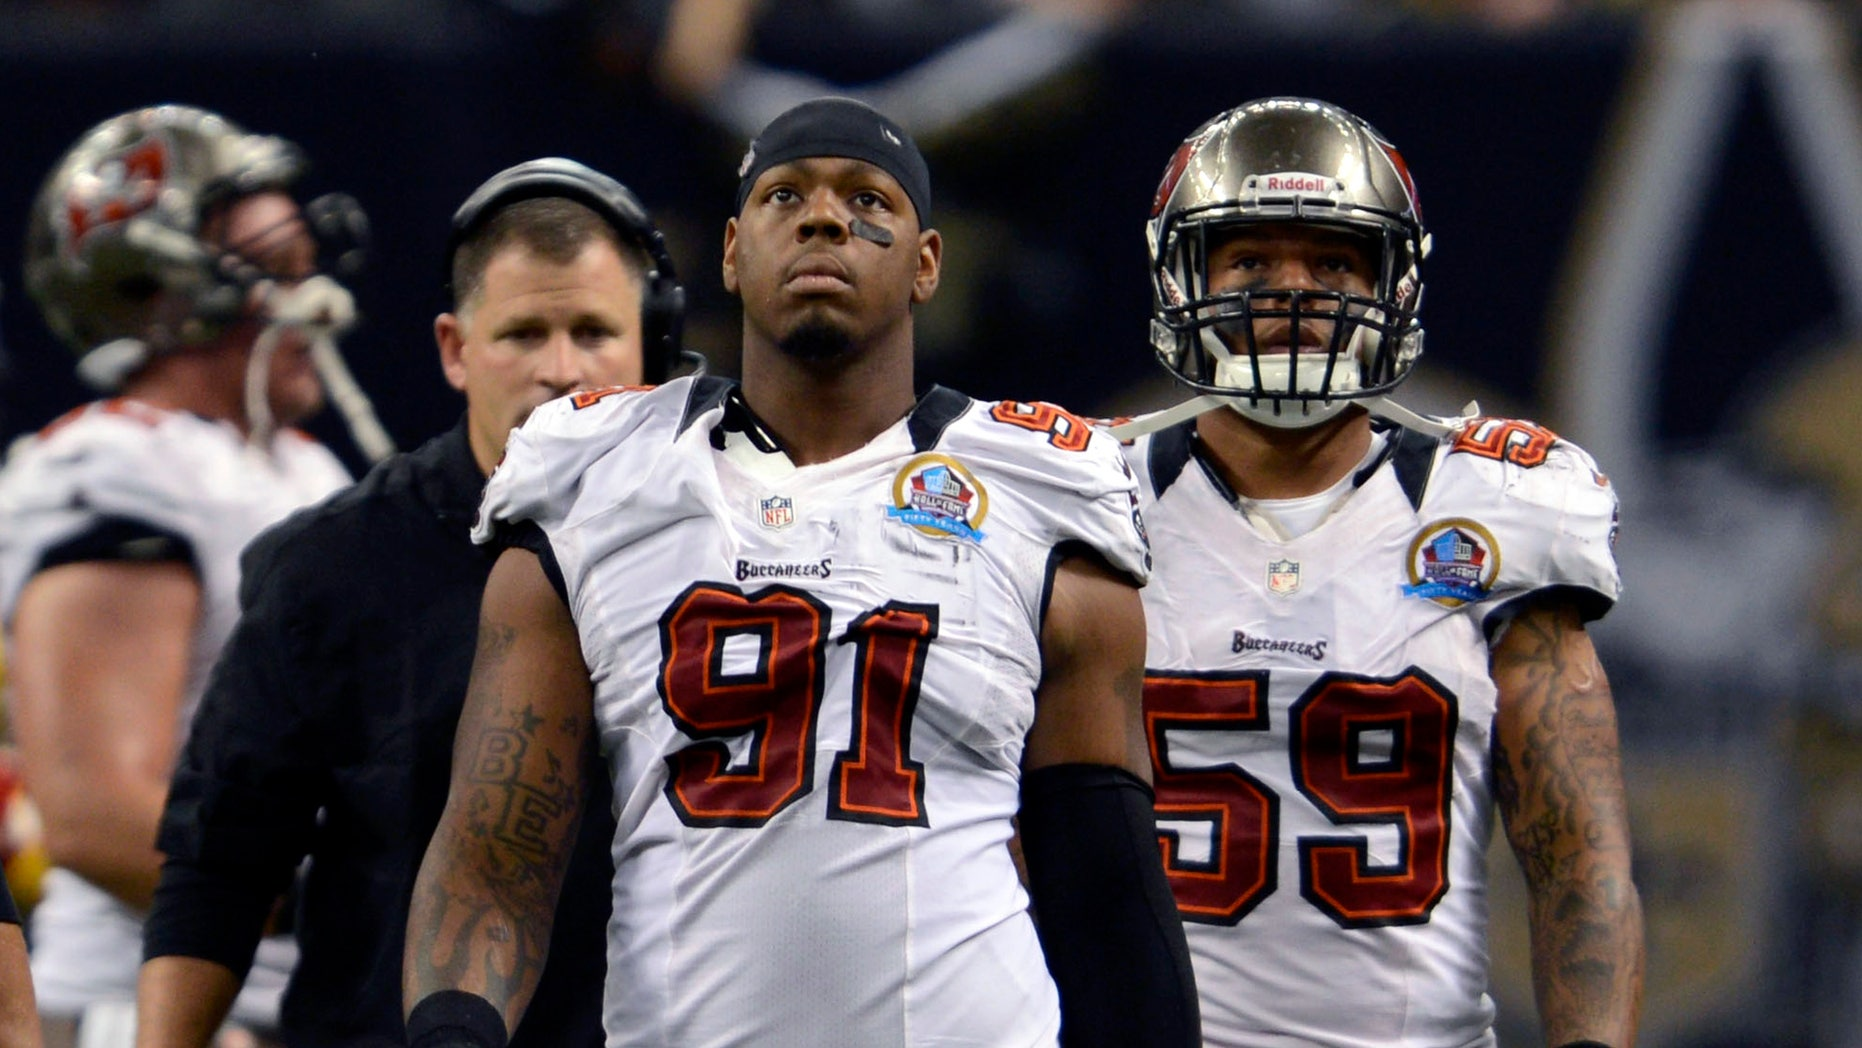 FILE - In this Dec. 16, 2012, file photo, Tampa Bay Buccaneers defensive end Da'Quan Bowers (91) walks off the field during an NFL football game in New Orleans. Bowers was arrested at LaGuardia Airport in New York on Monday, Feb. 18, 2013, after police found a loaded handgun in his luggage, according to authorities. (AP Photo/Bill Feig, File)